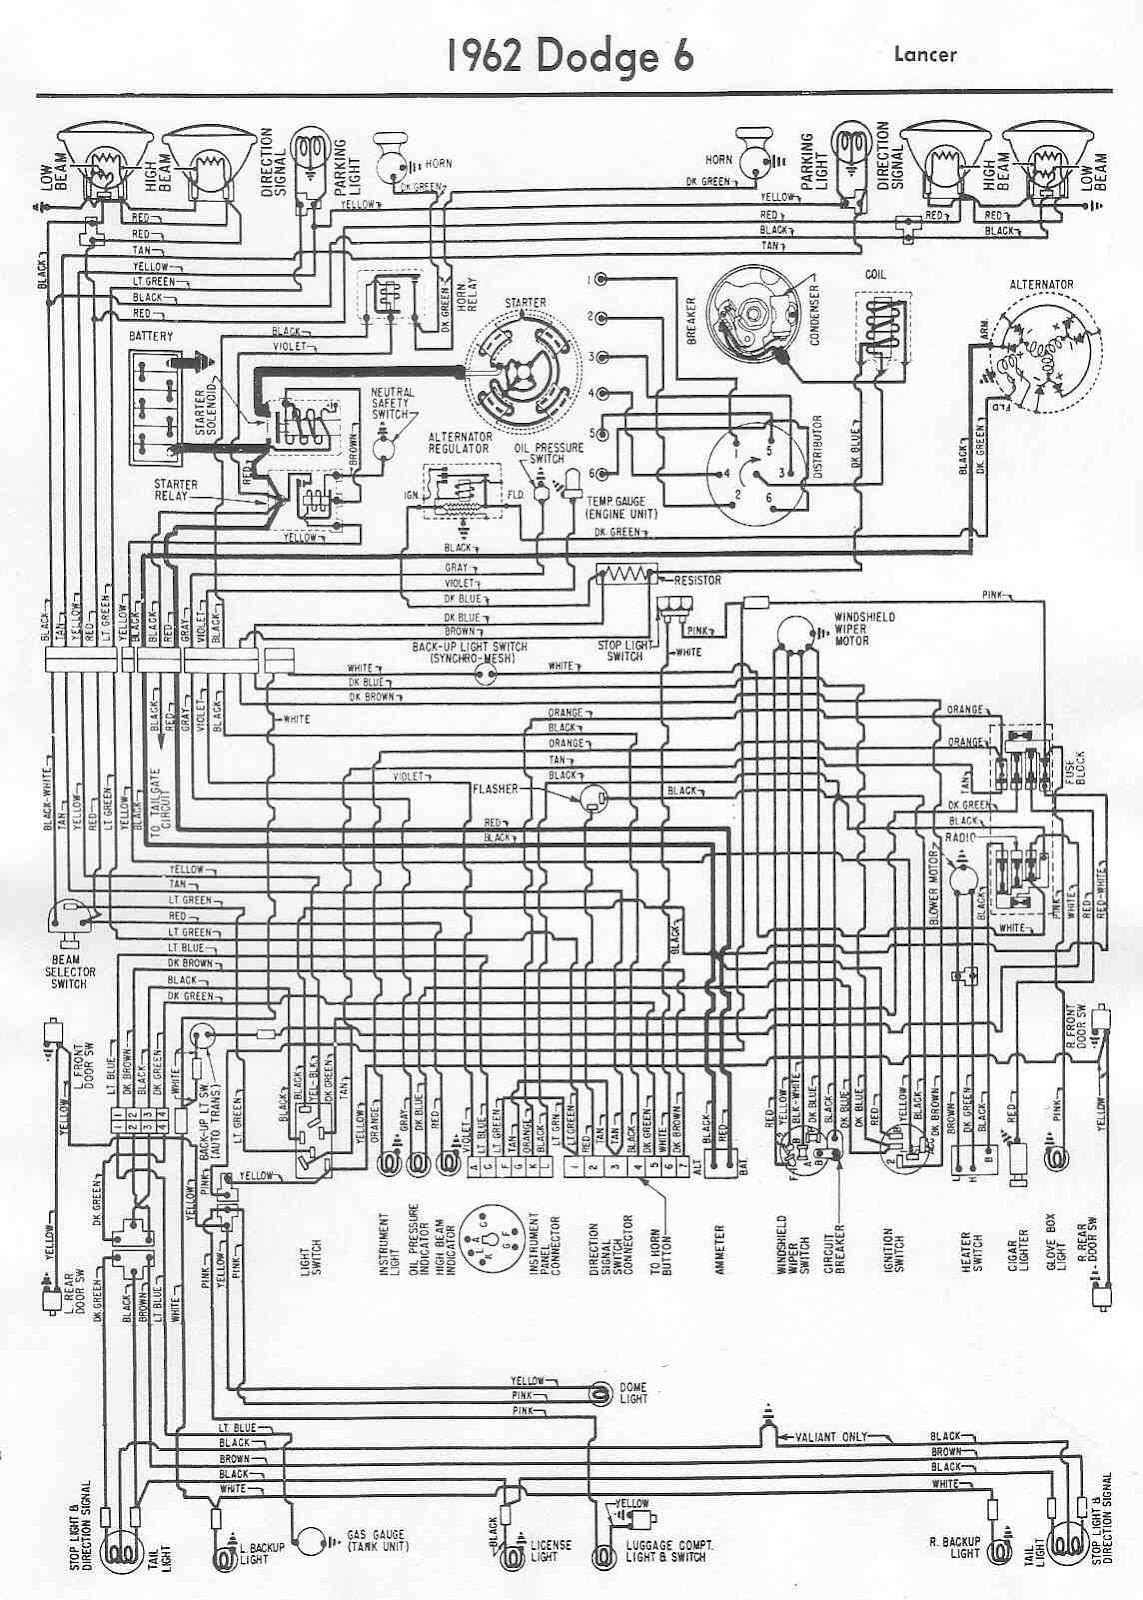 2000 Mitsubishi Lancer Engine Wiring Diagram Great Design Of 2003 Galant Stereo Mirage Bose Car Diagrams 2001 Eclipse Brakelights